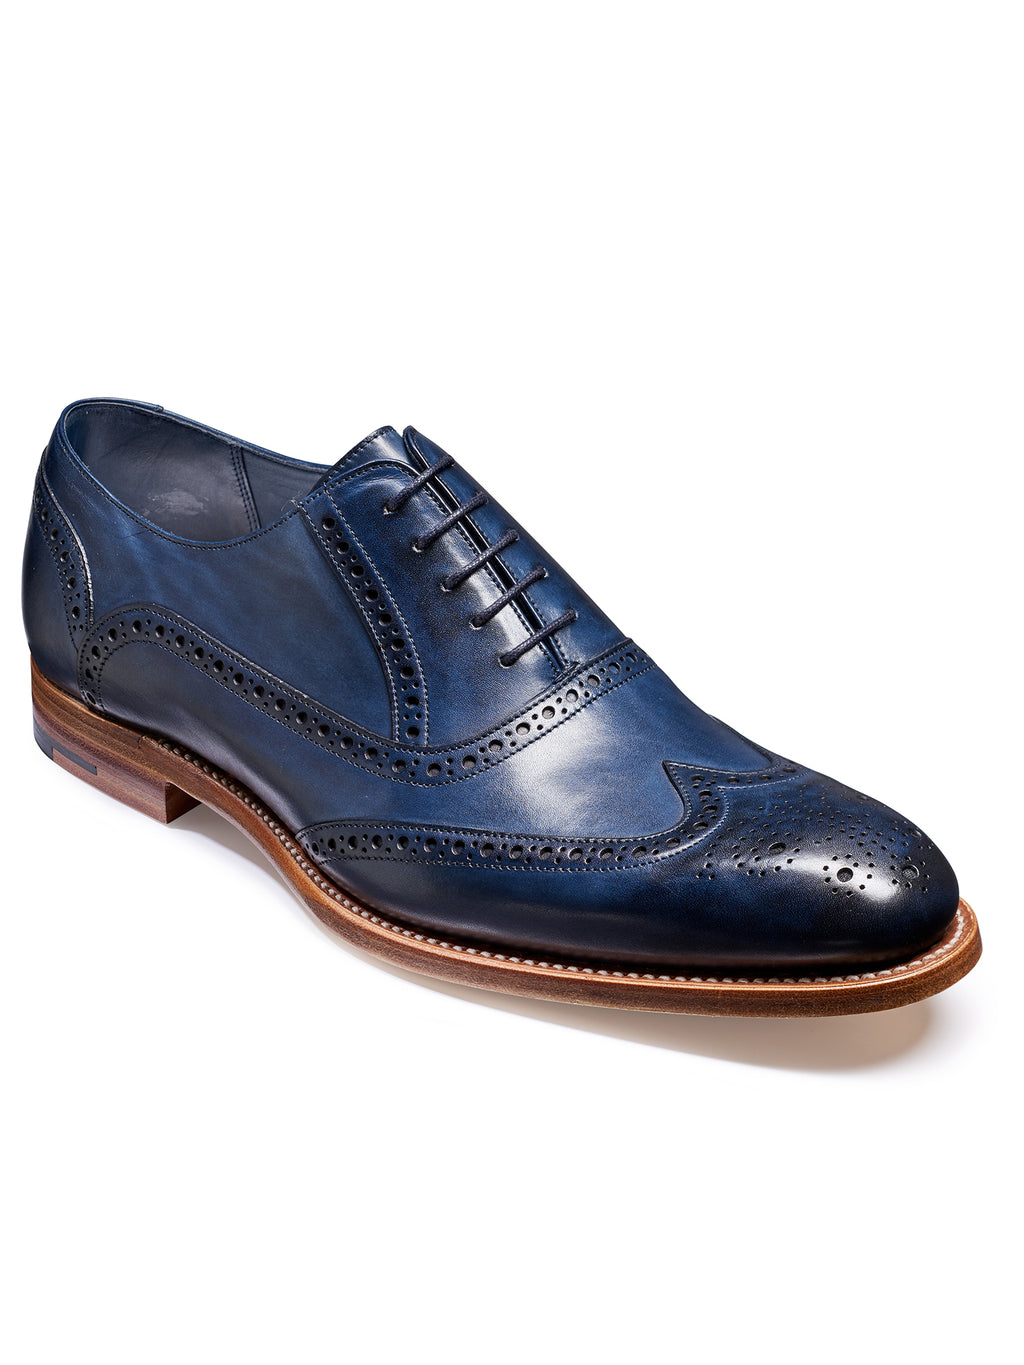 barker shoes navy hand painted valiant brogue shoe